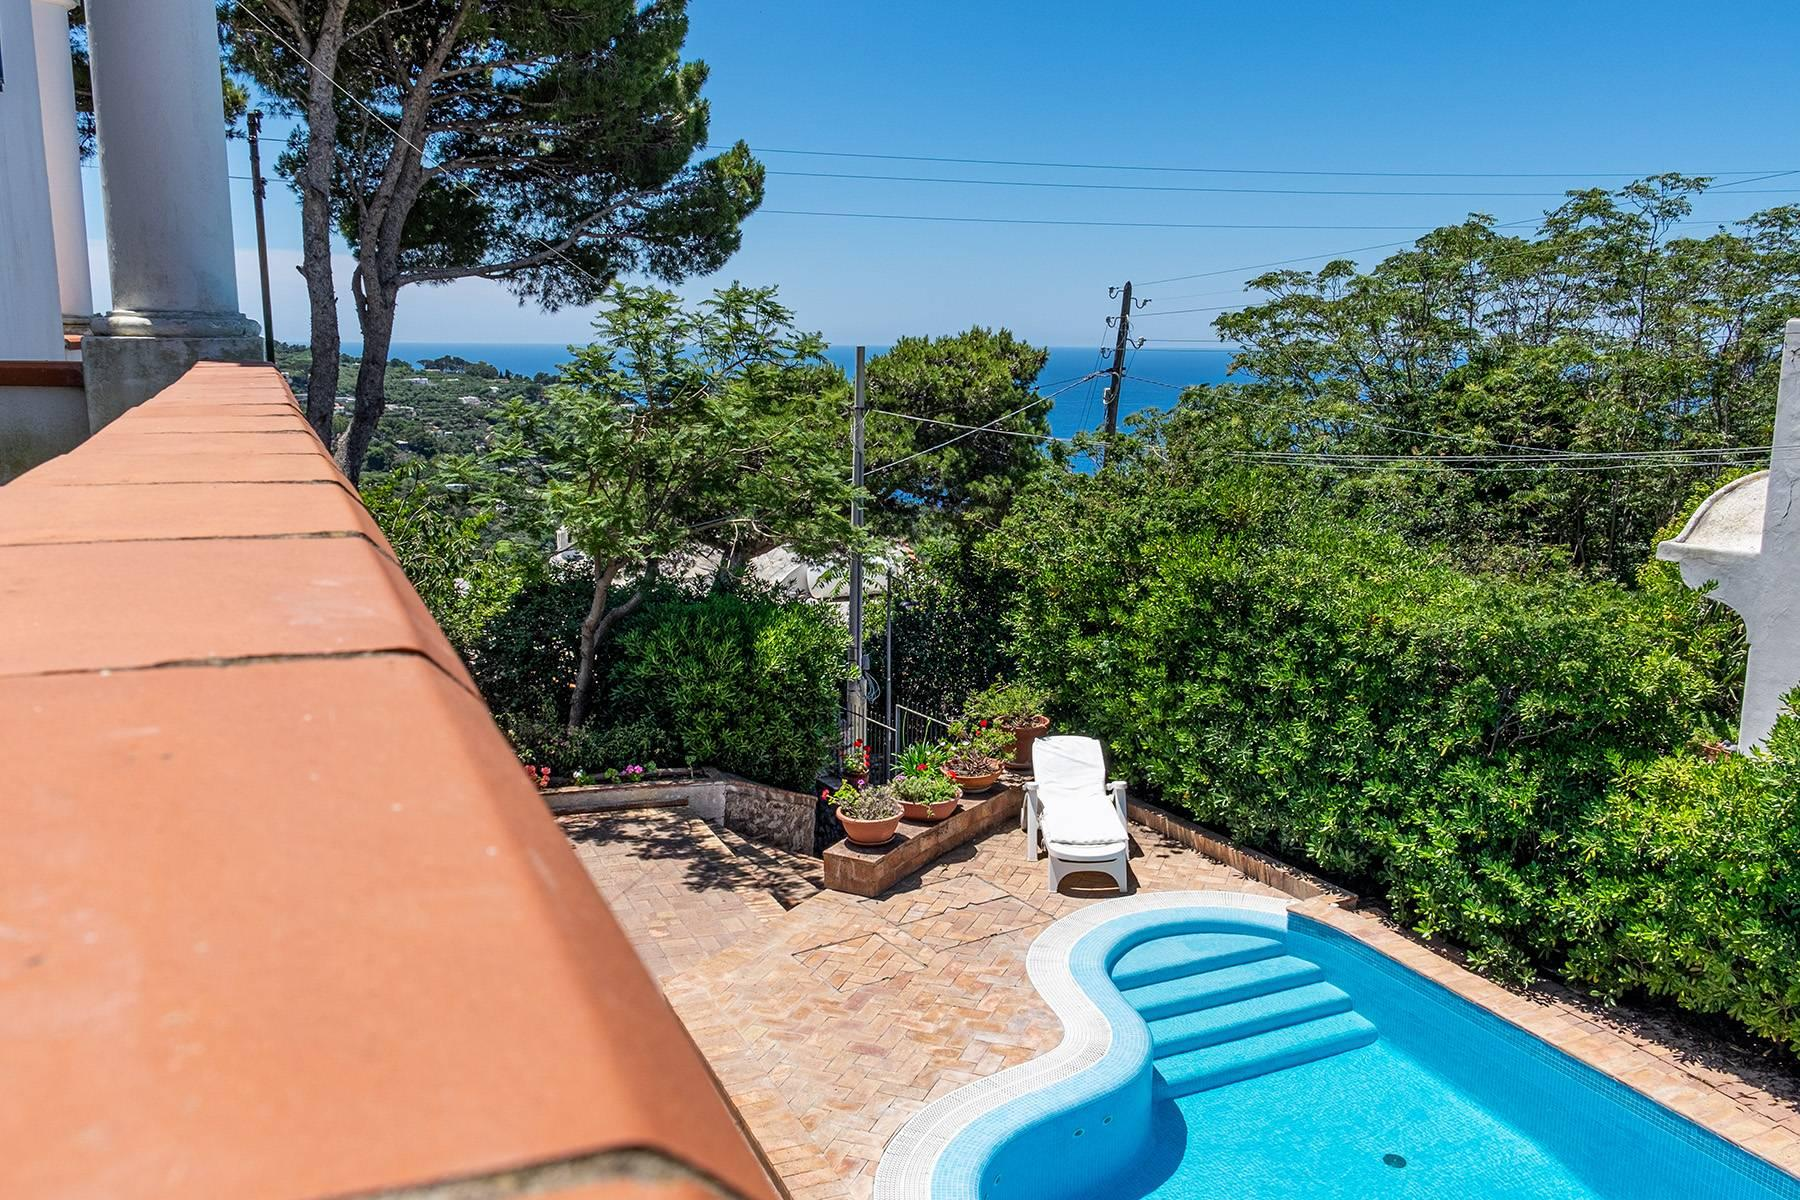 Charming villa with swimming pool in Anacapri - 22